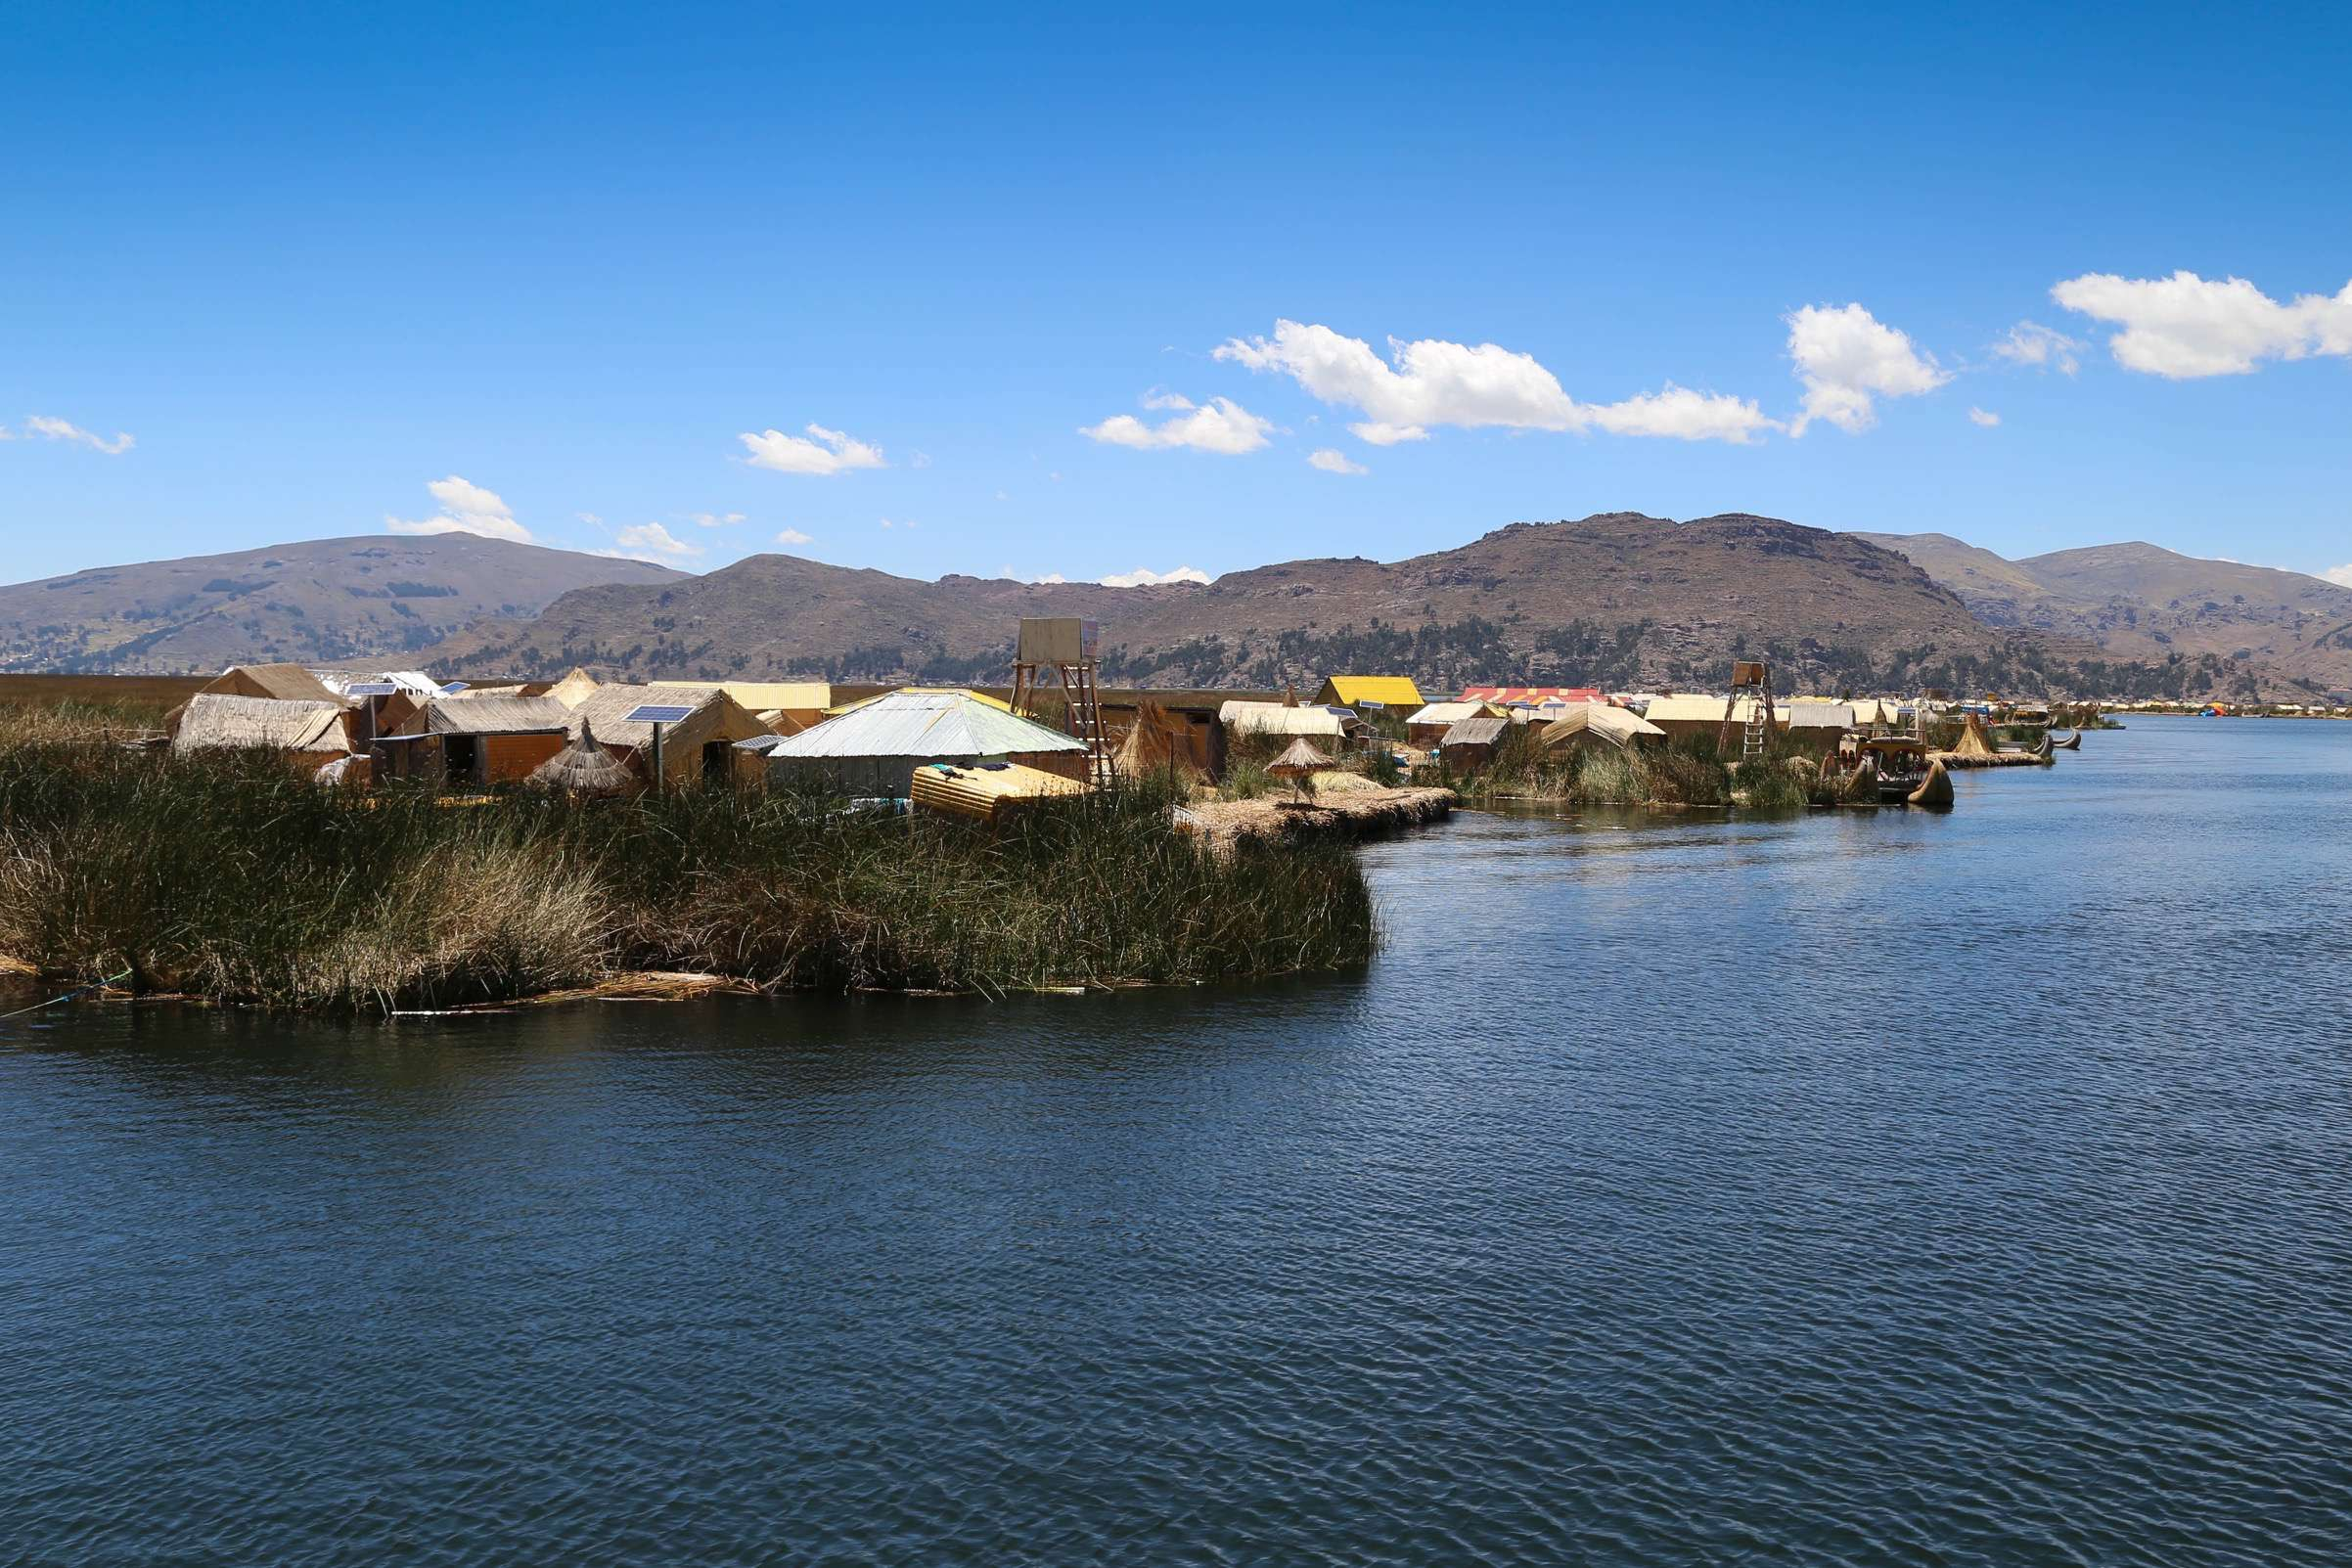 The floating islands are clustered in an area of Lake Titicaca in Peru.